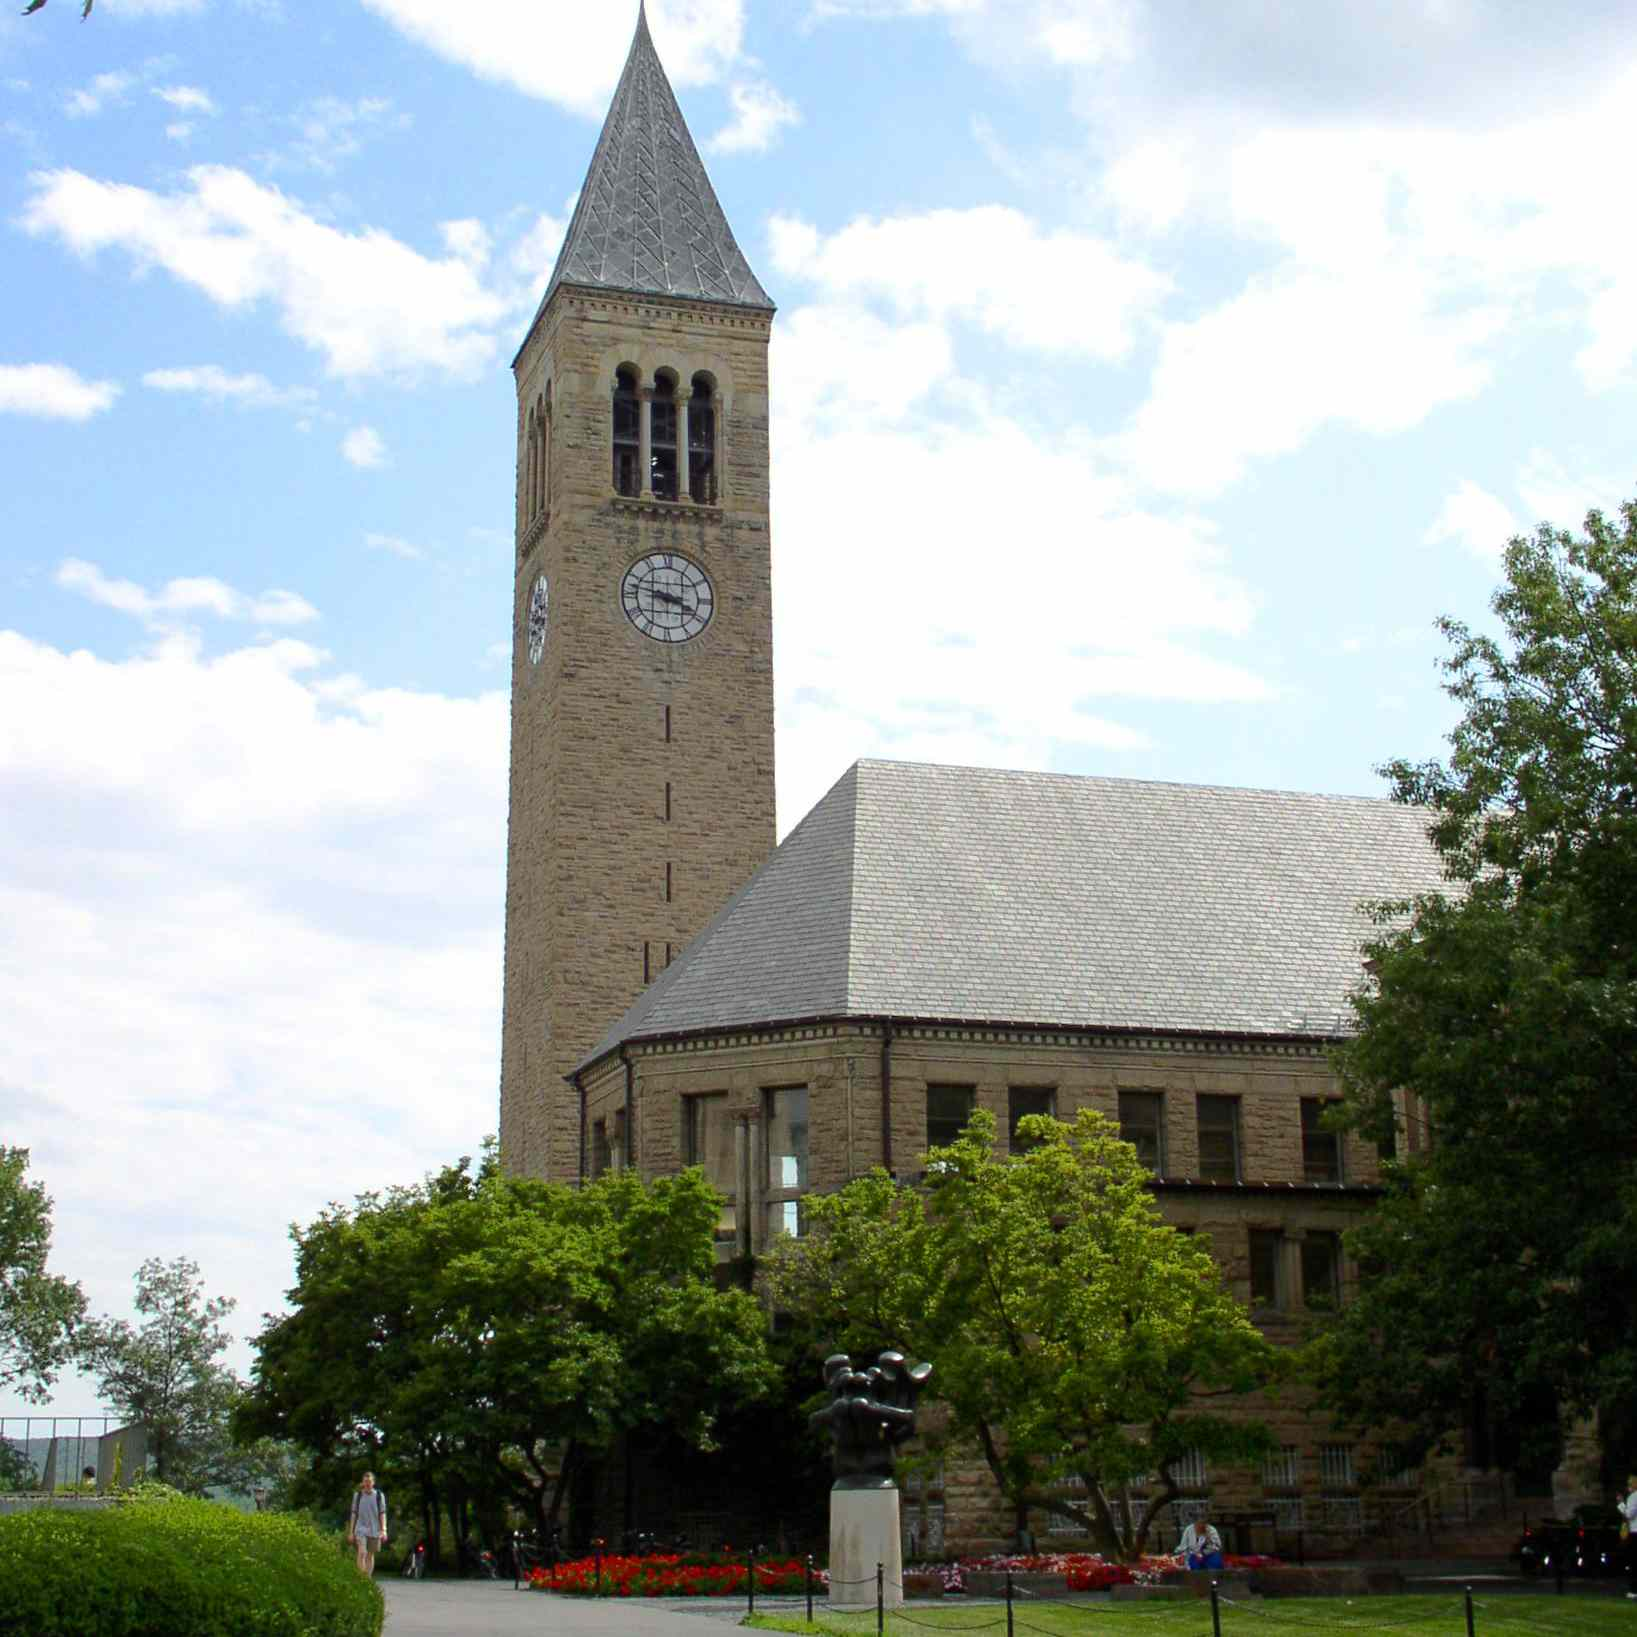 Cornell University McGraw Tower and Uris Library